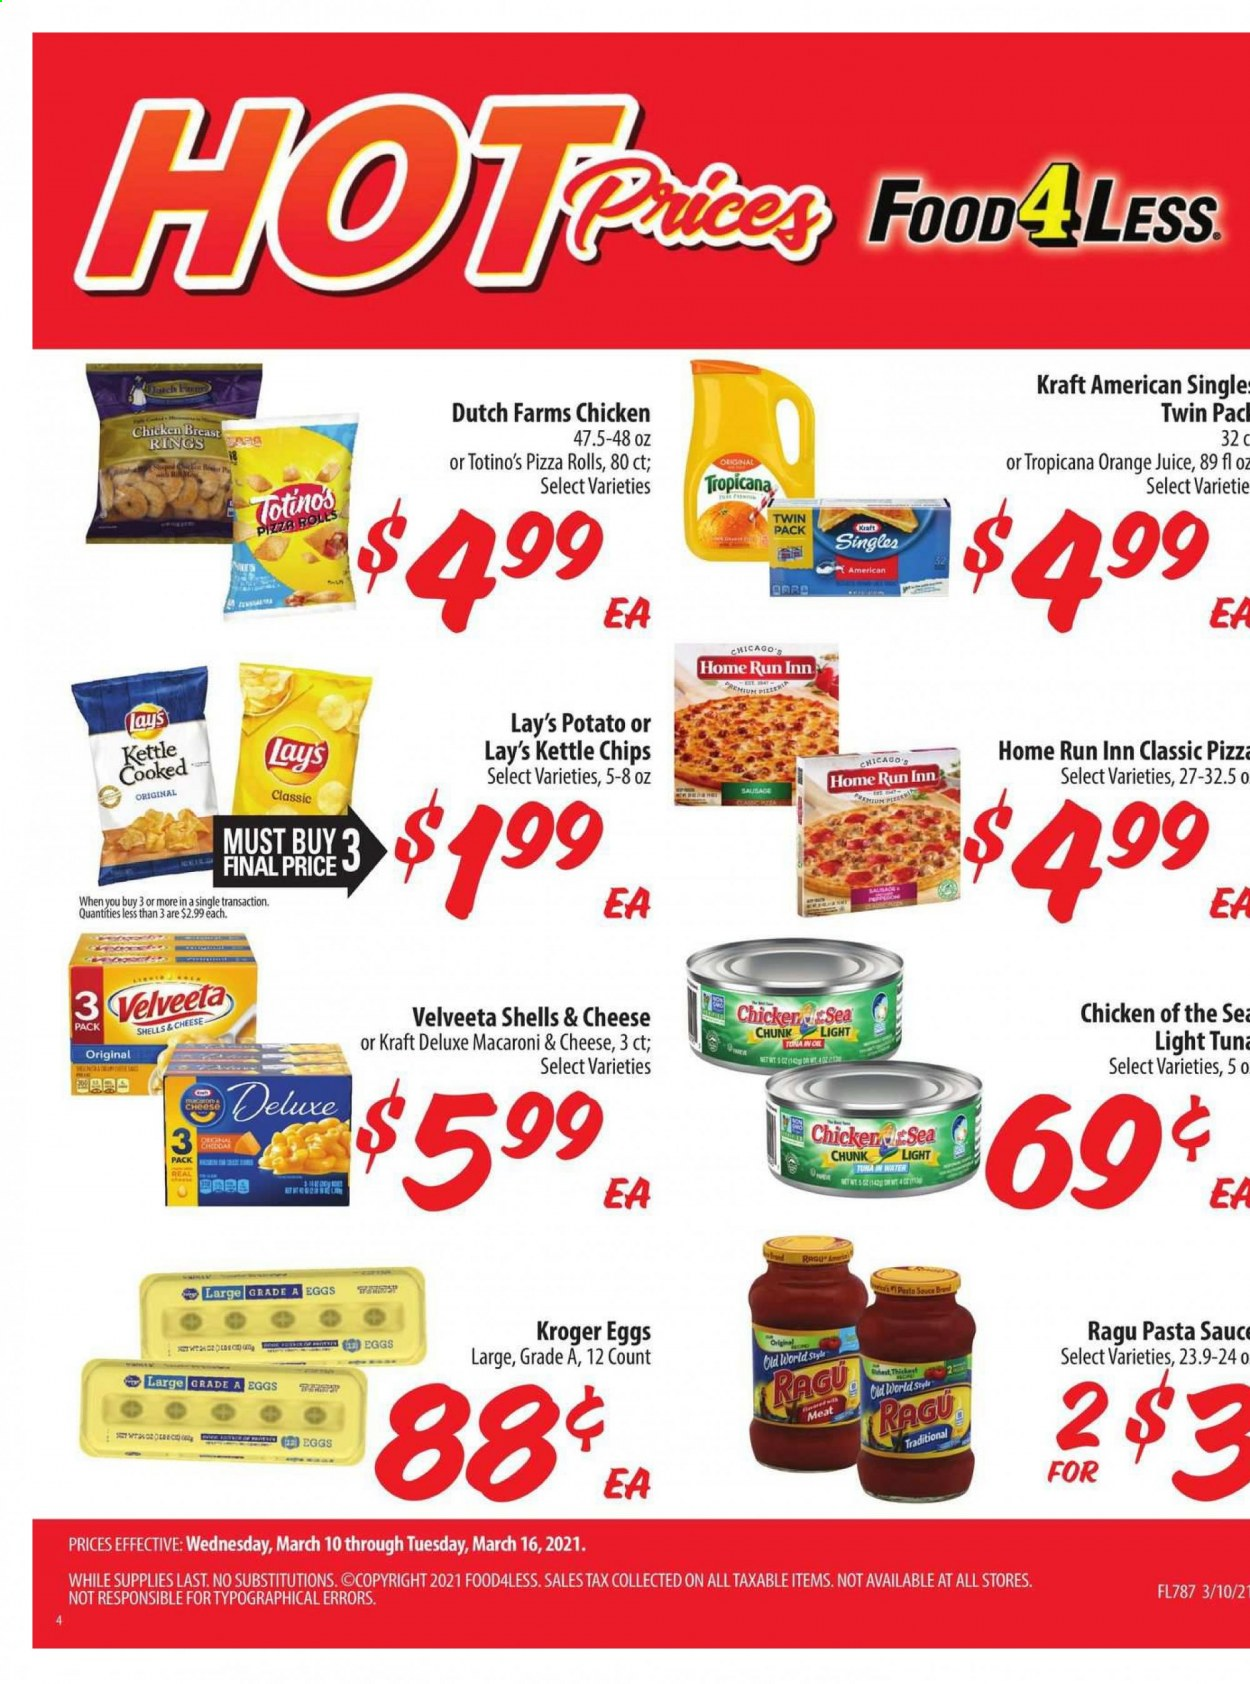 Food 4 Less Flyer - 03.10.2021 - 03.16.2021 - Sales products - pizza rolls, rolls, tuna, macaroni & cheese, pizza, sauce, Kraft®, sausage, cheddar, eggs, chips, Lay's, tuna in water, light tuna, Chicken of the Sea, pasta sauce, ragu, orange juice, juice, chicken breasts, chicken meat, water. Page 1.